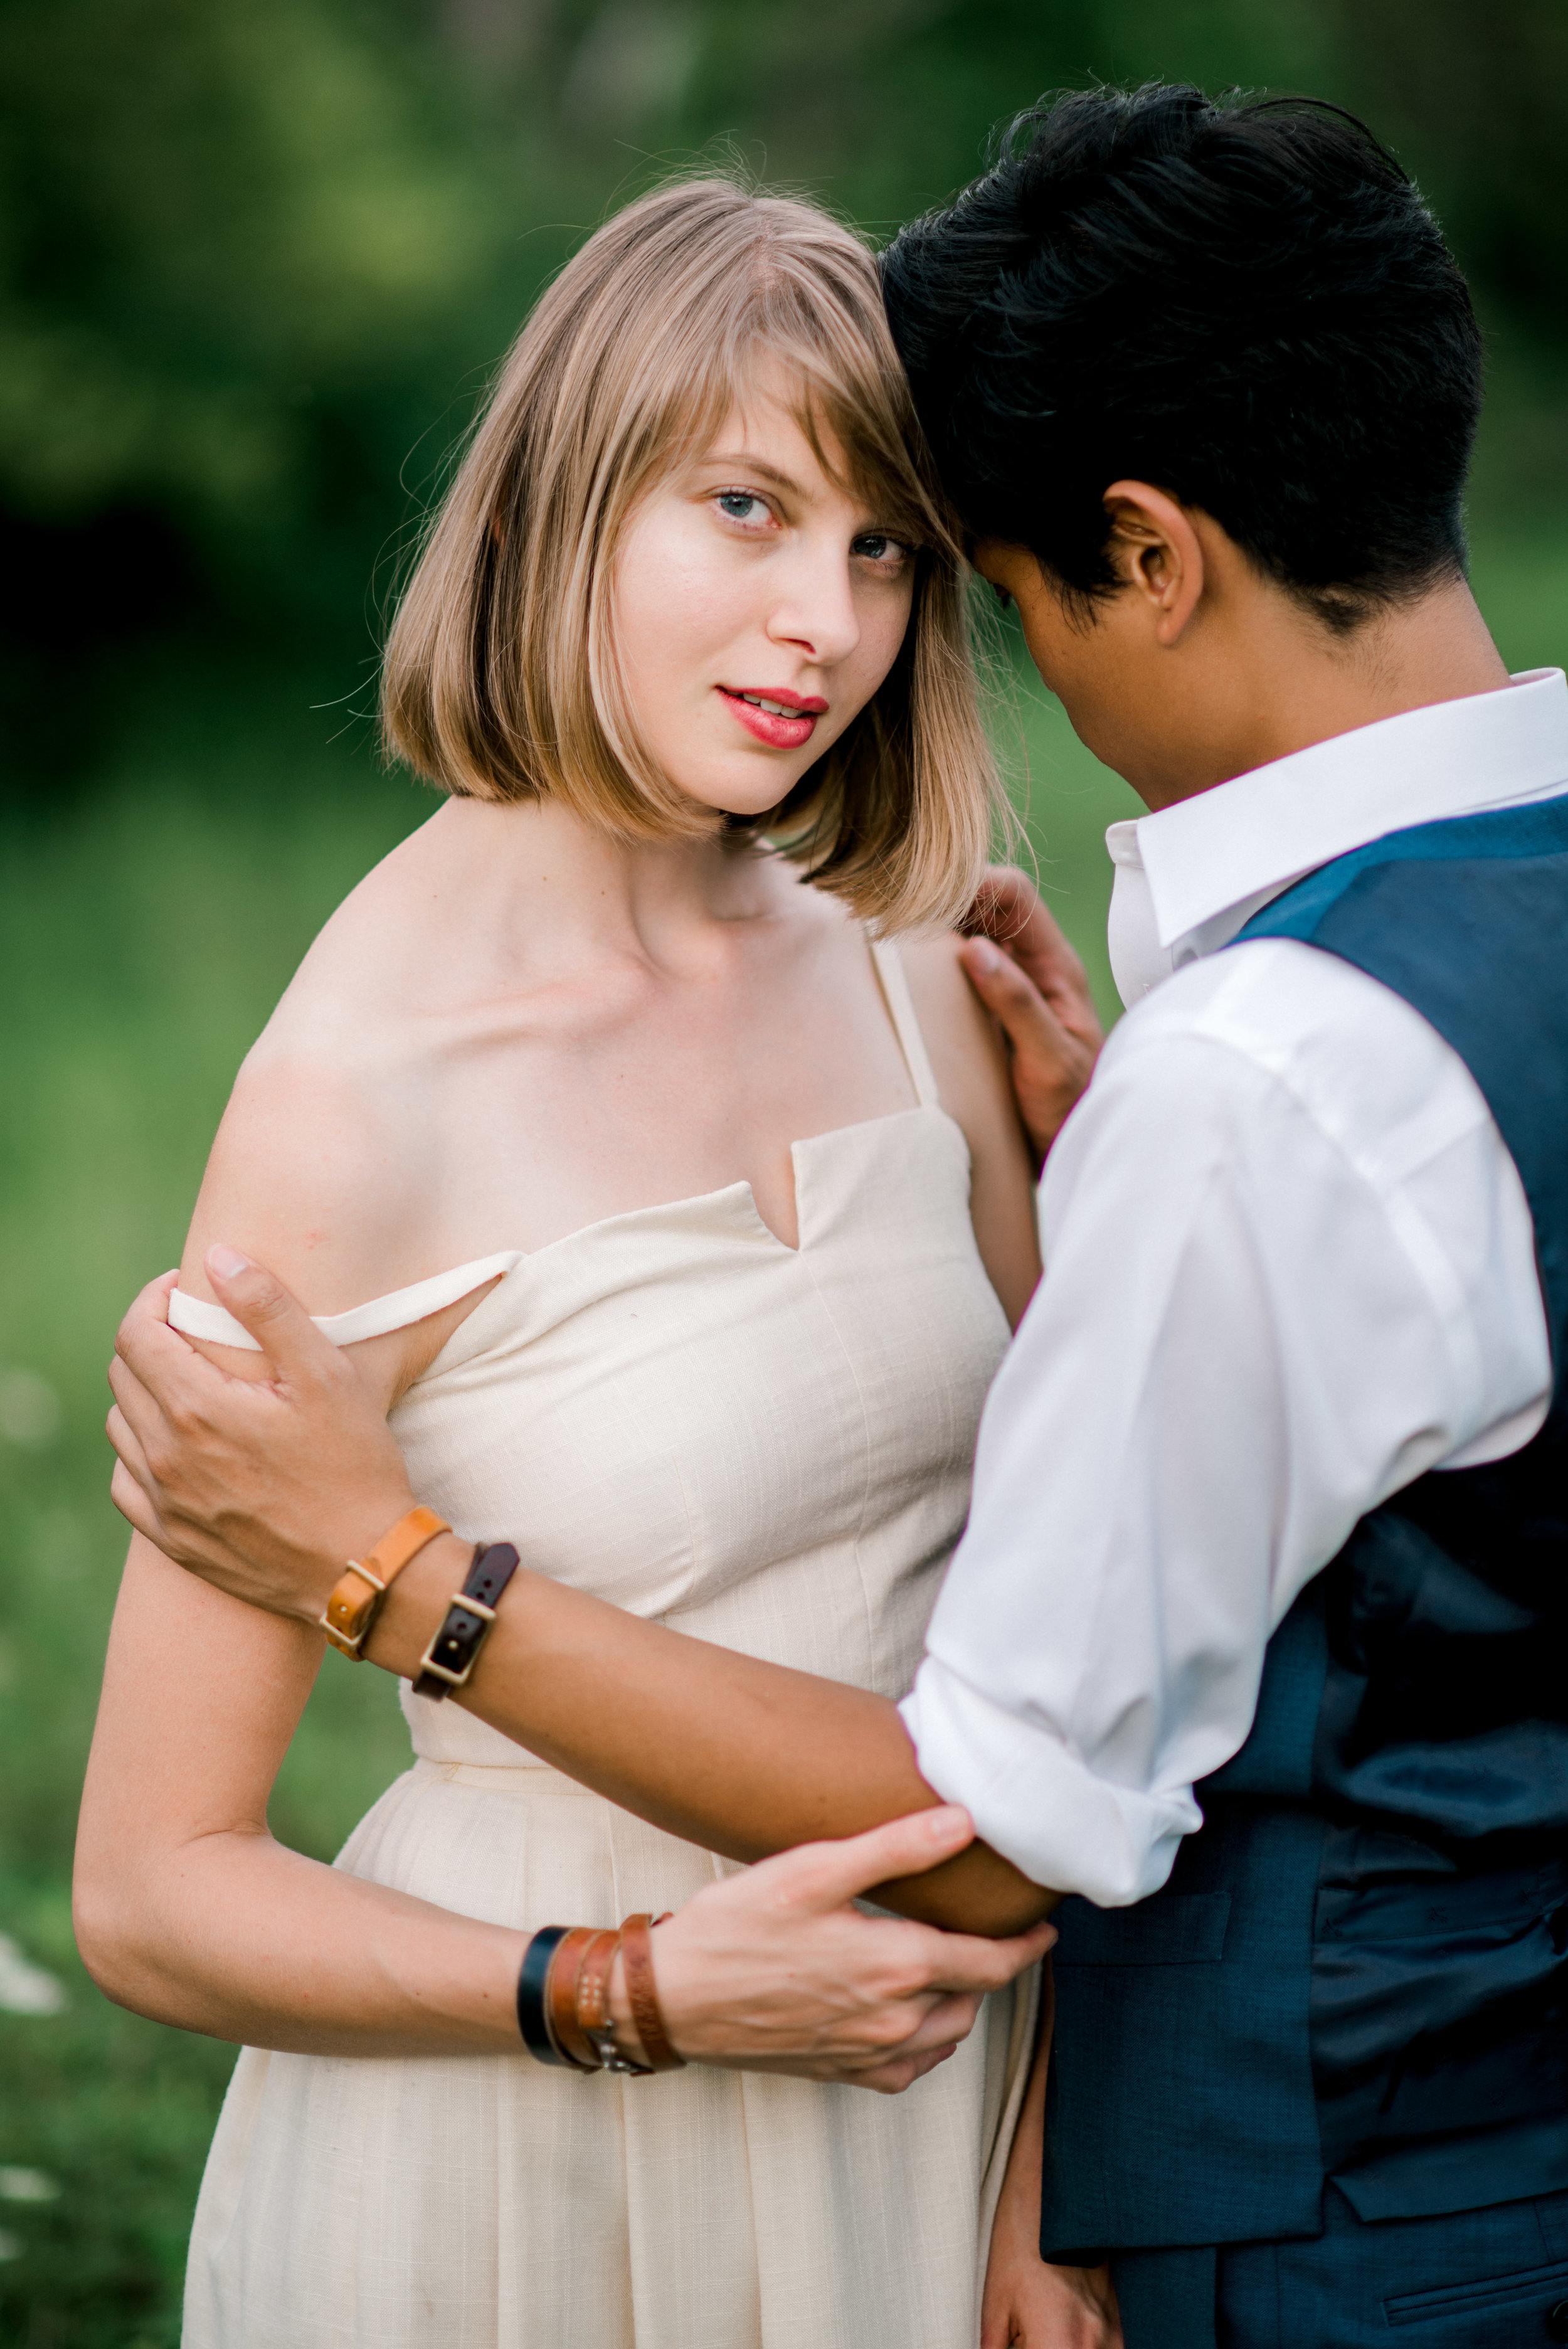 lexington-wedding-photographer-intimate-embrace